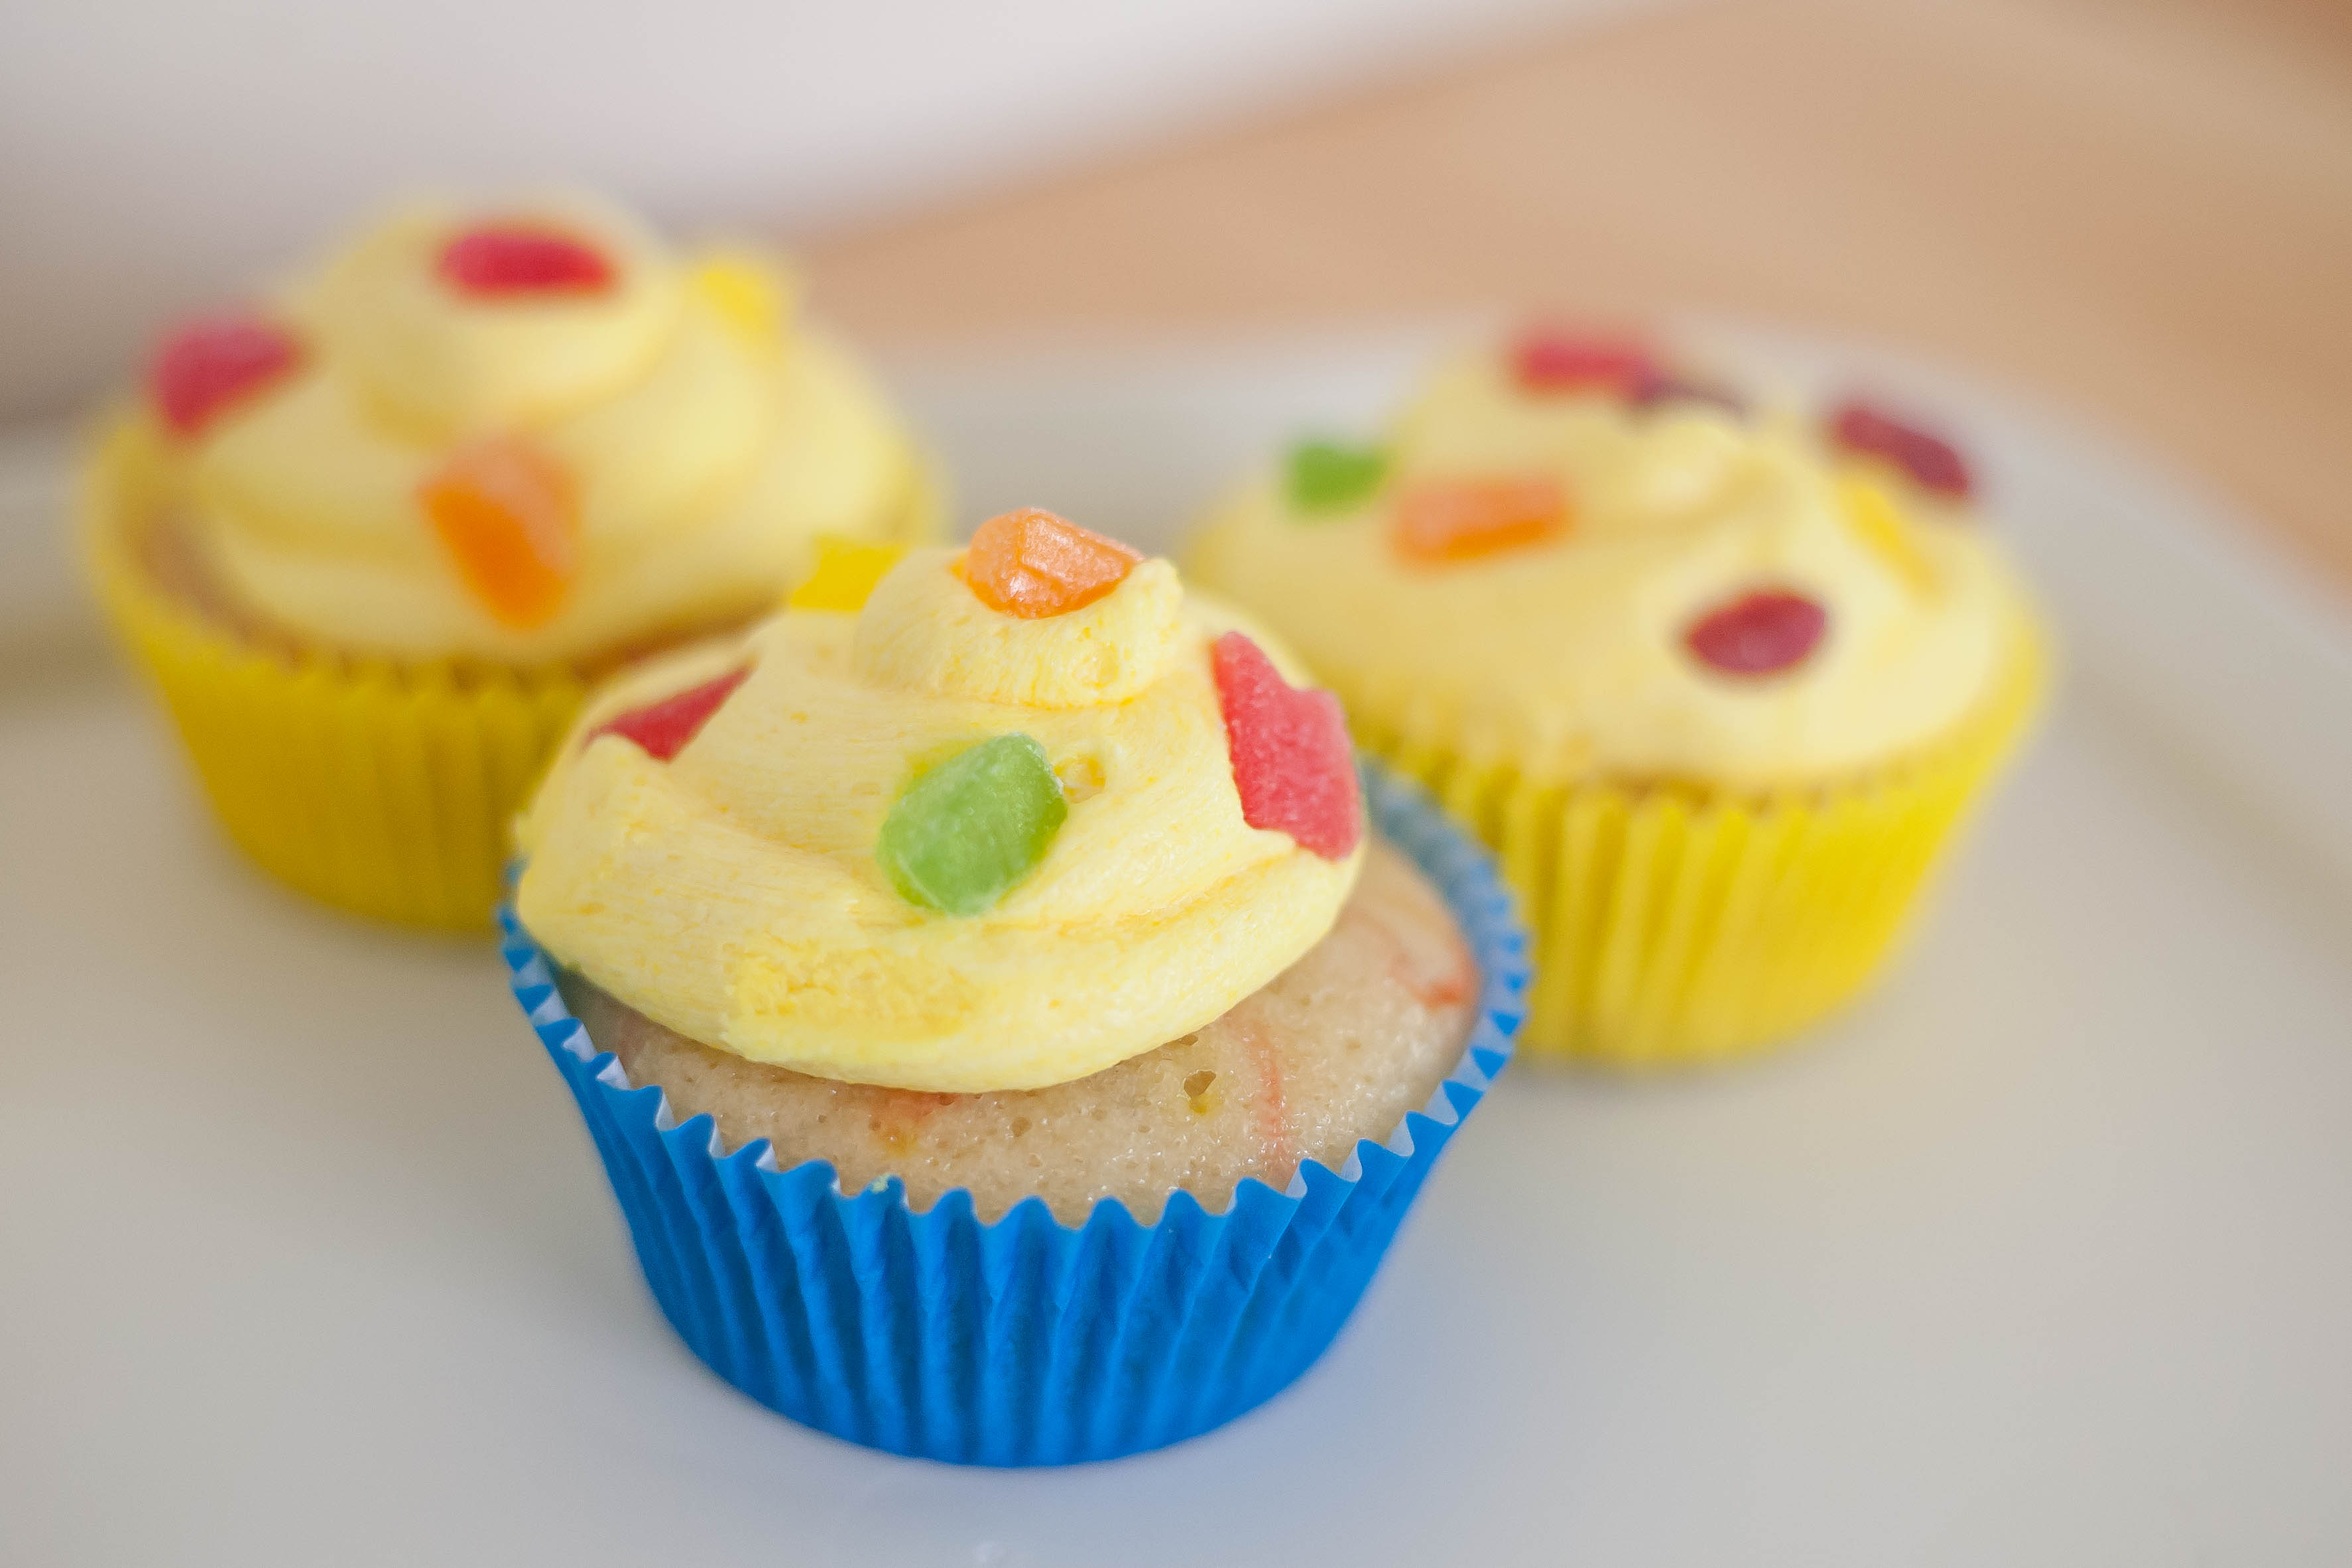 My Favorite Vanilla Cupcakes with Jello Frosting